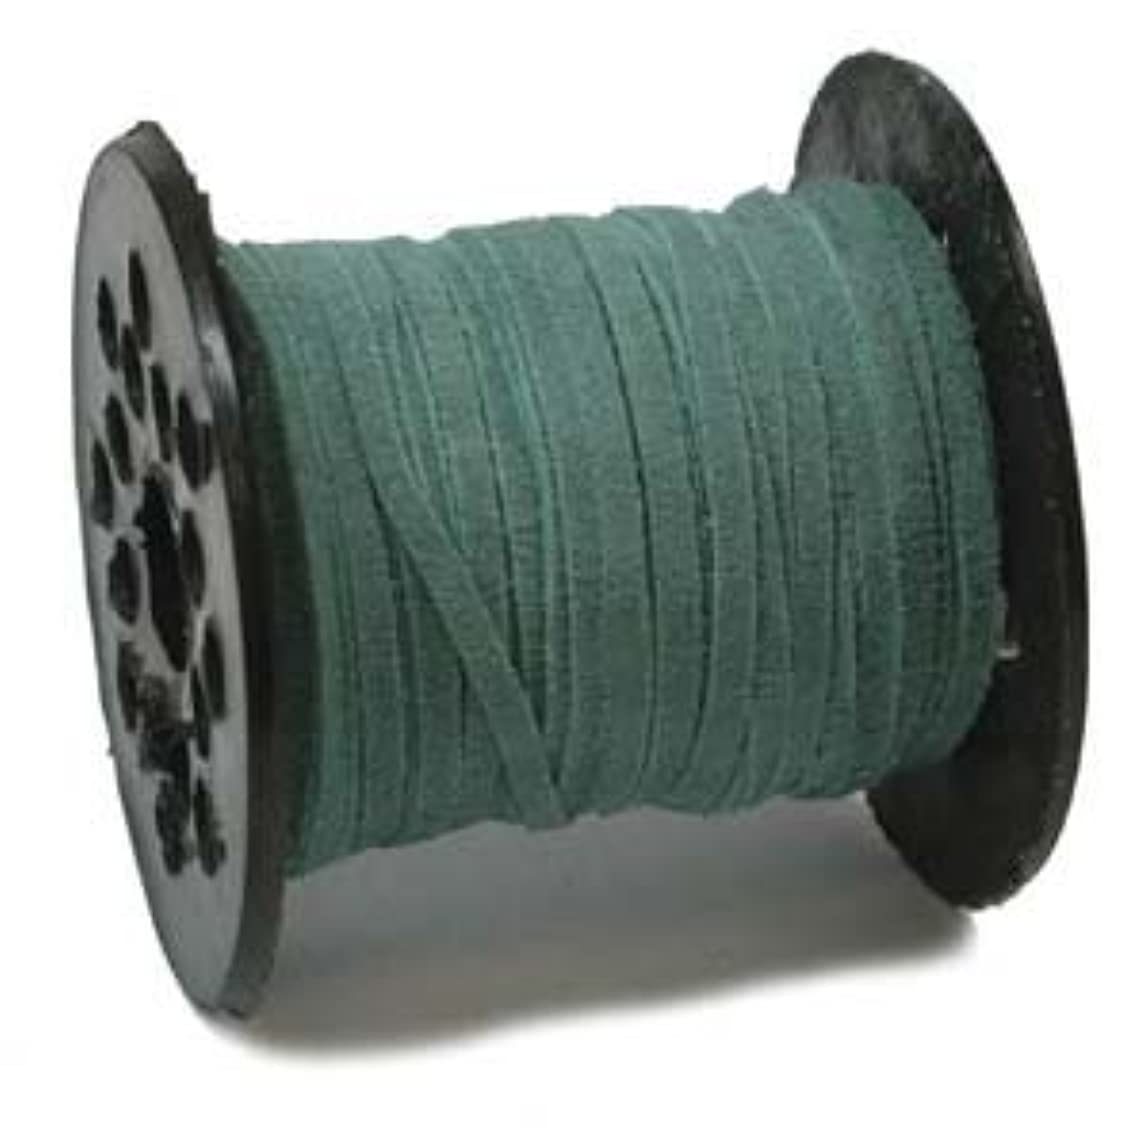 3mm Real Suede Lace Cord String Turquoise 25 Yards